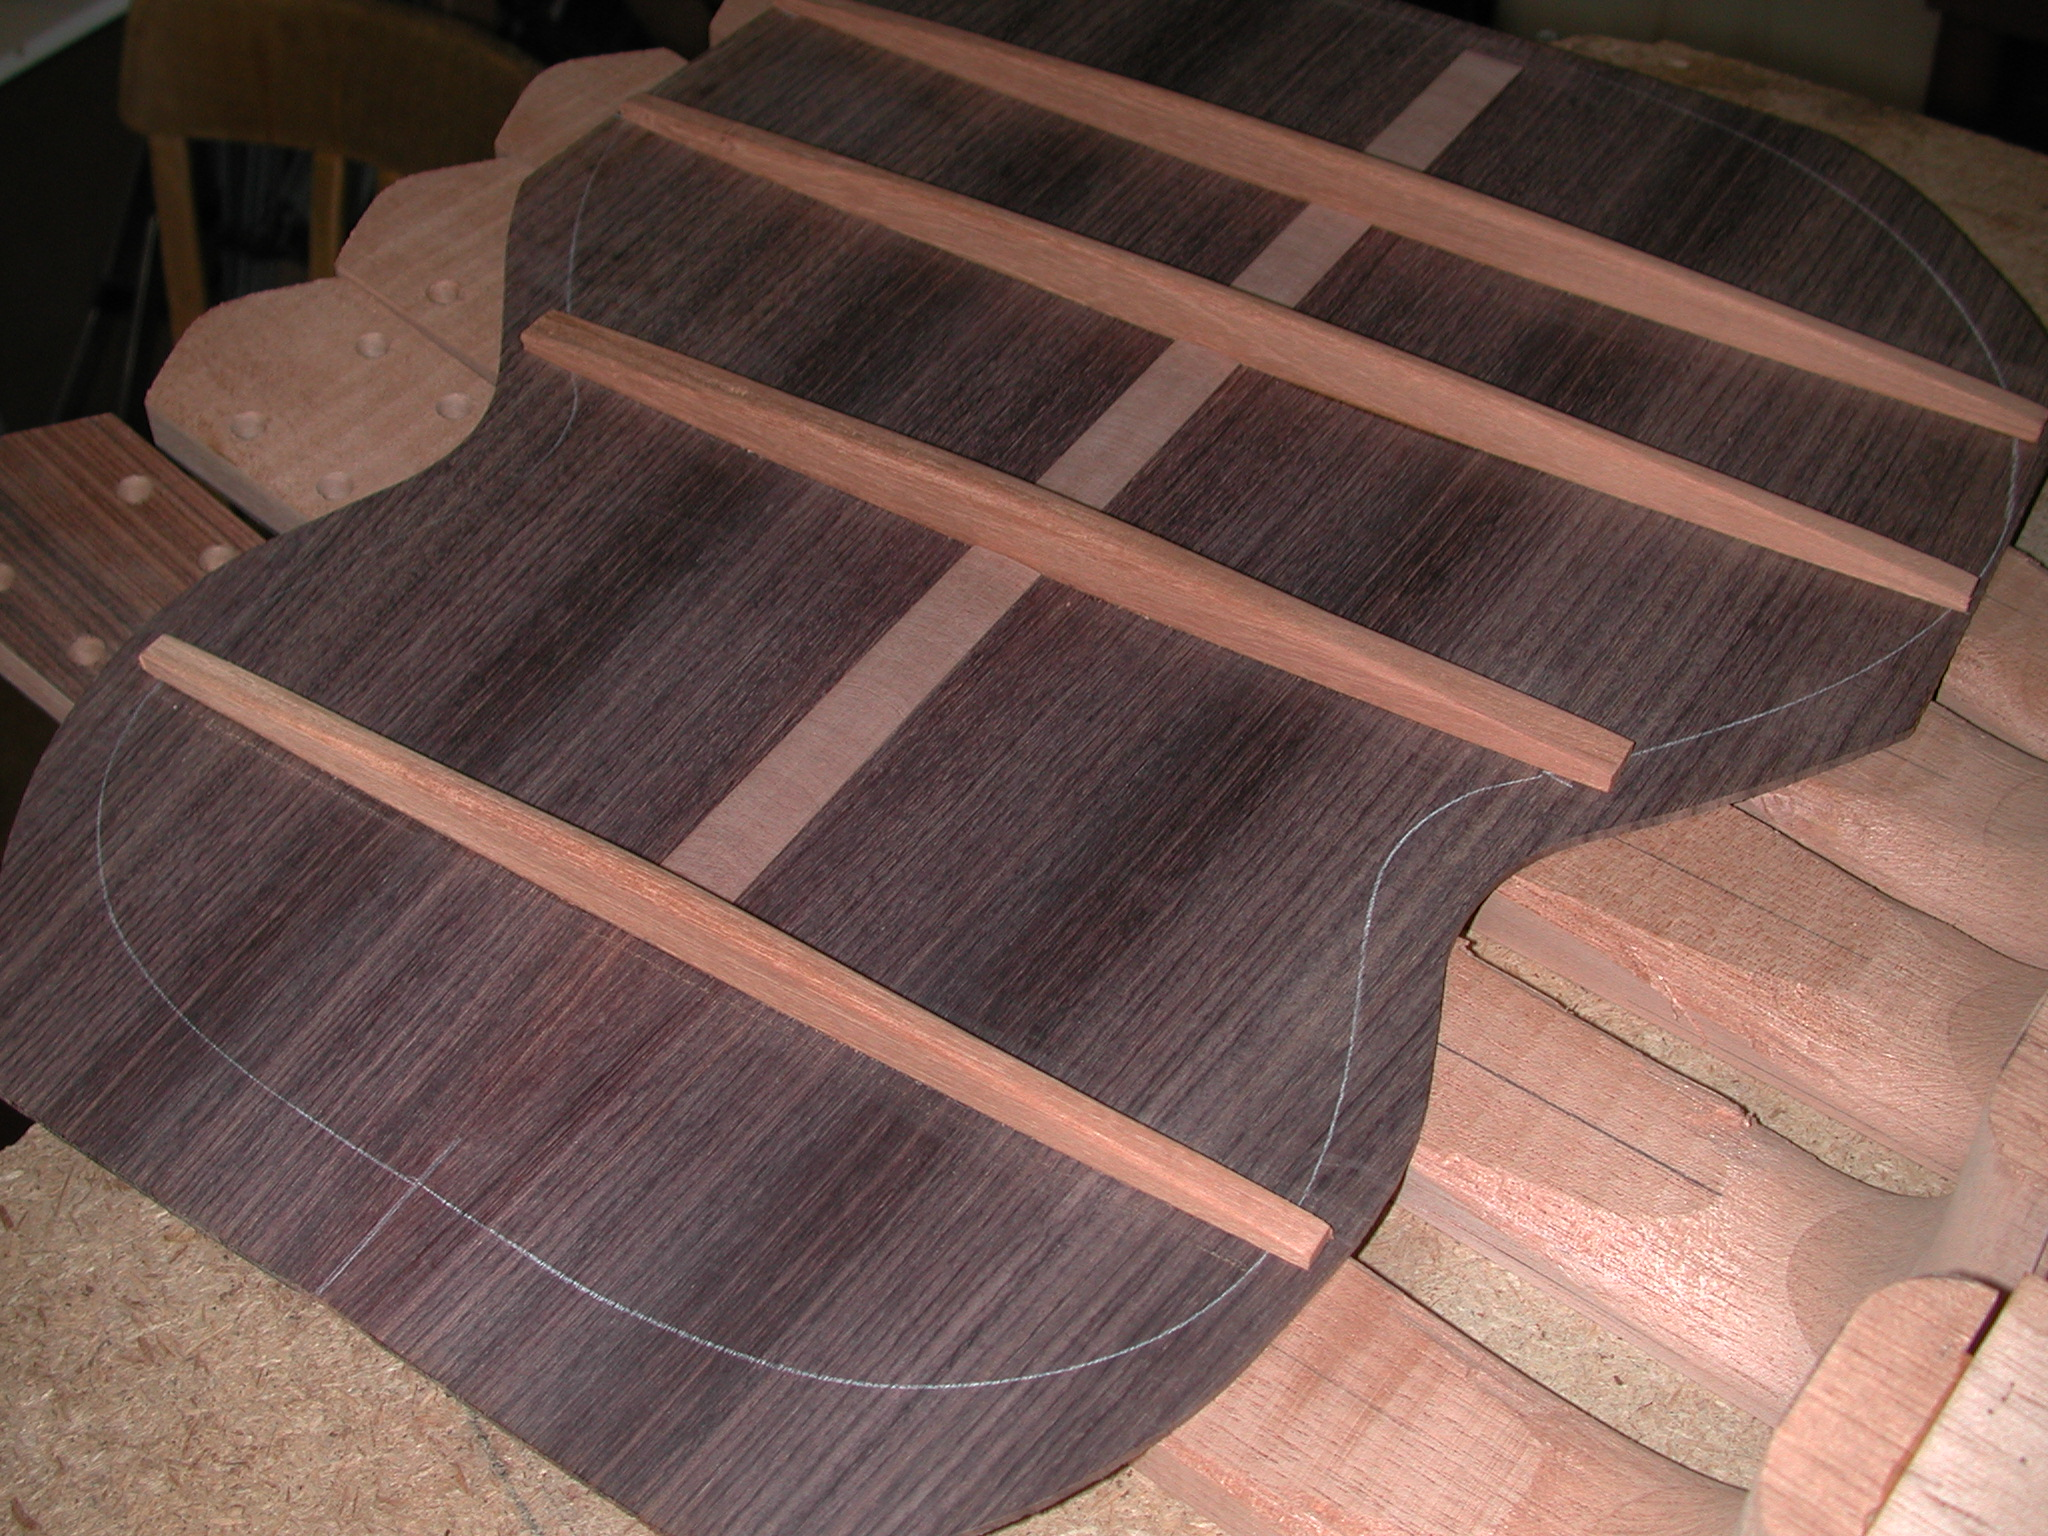 Back: The bracing on the back is finished.